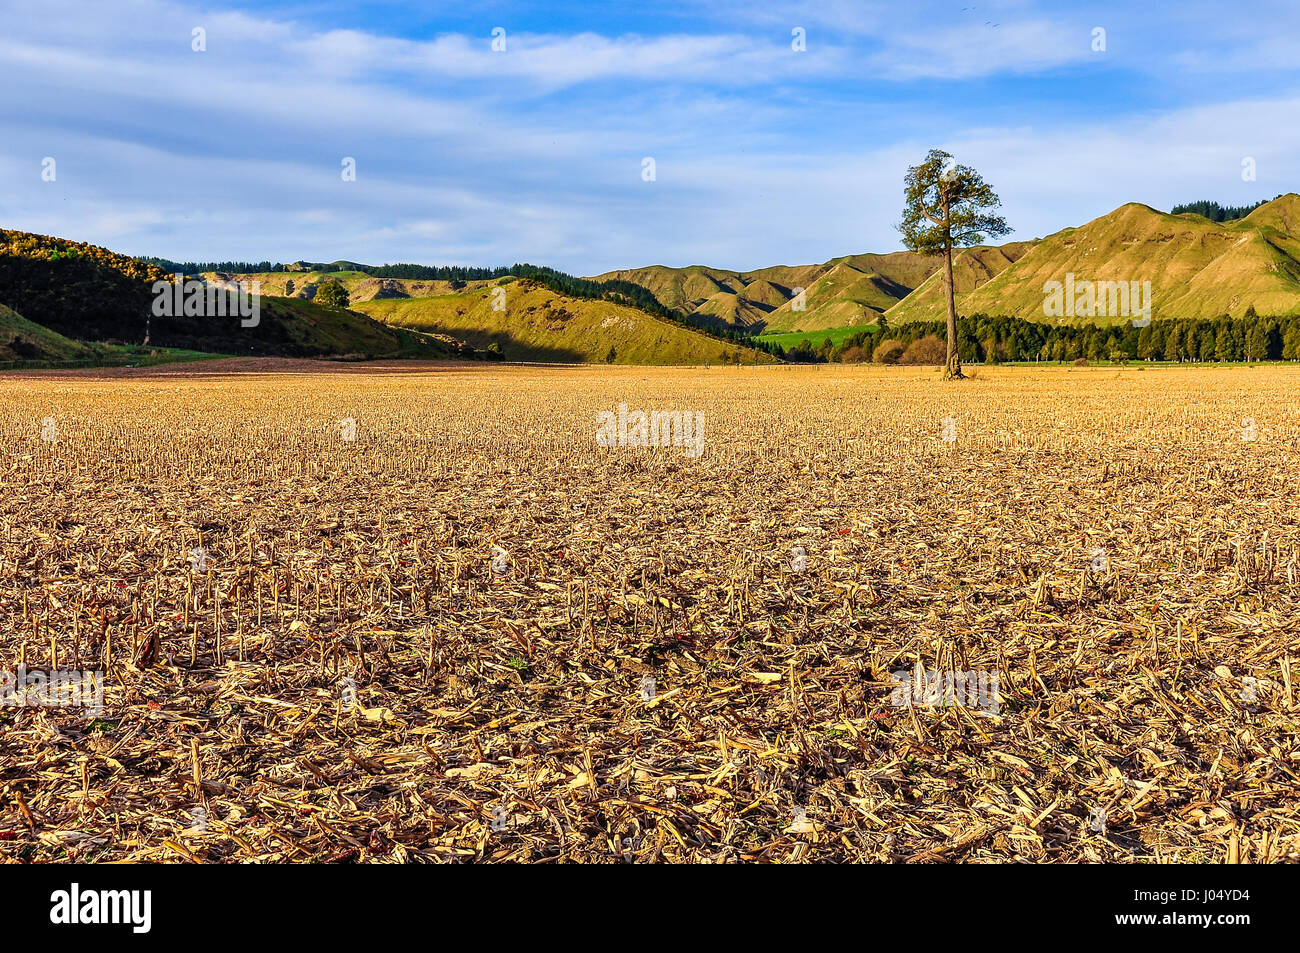 Field with a lonely tree in the Whanganui National Park, North Island of New Zealand - Stock Image